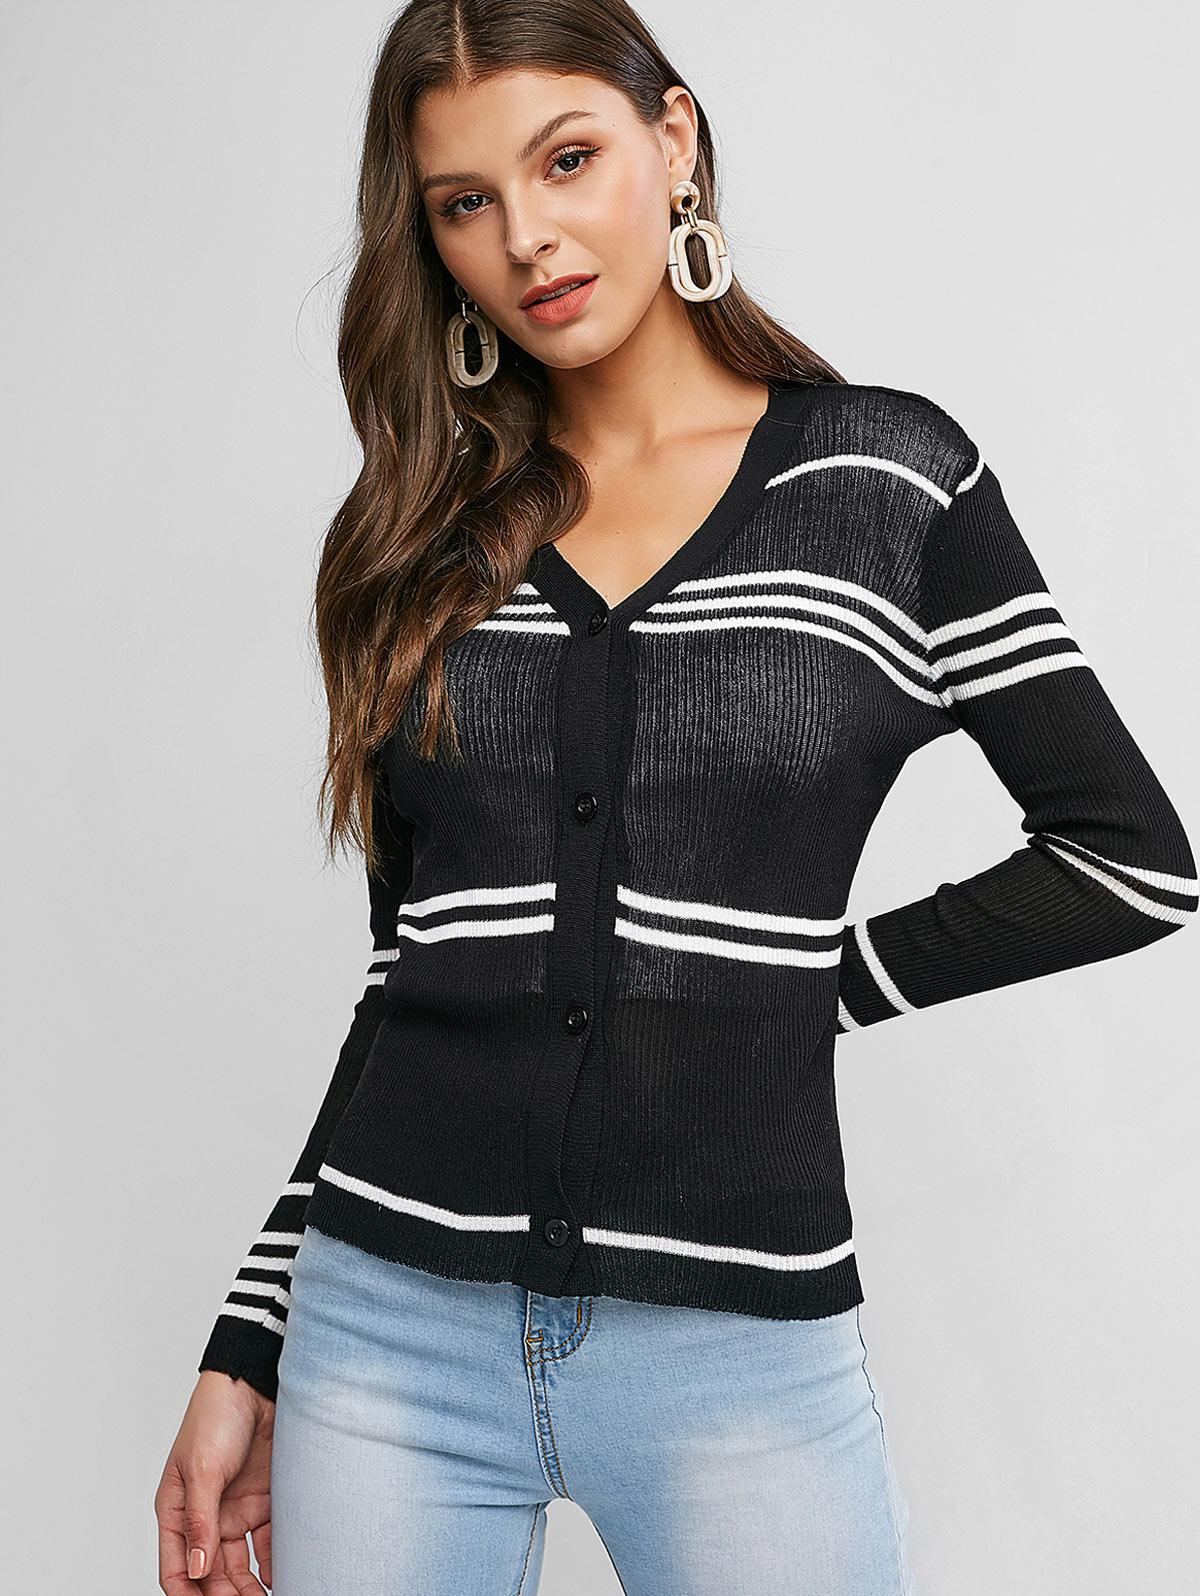 Striped Slim Single Breasted Knit Cardigan